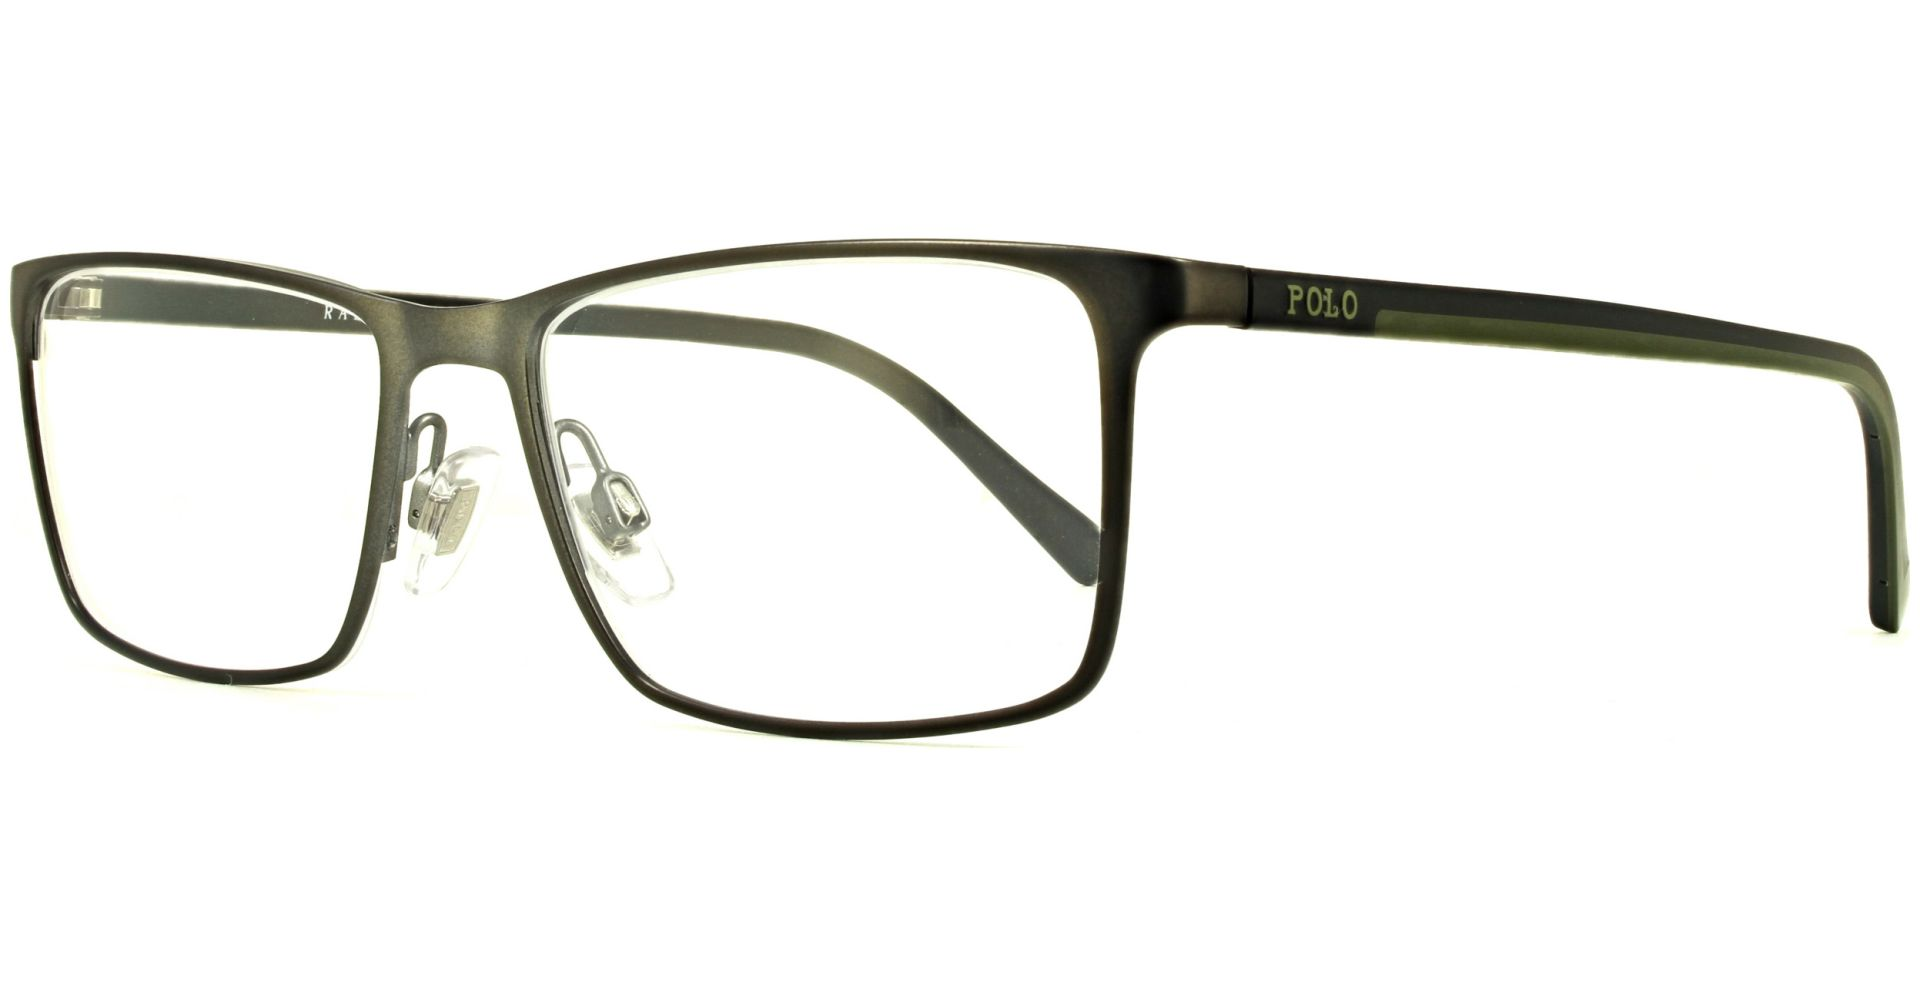 Polo - Ralph Lauren - PH1165 9187 5317 Matte Dark Gunmetal - von ...